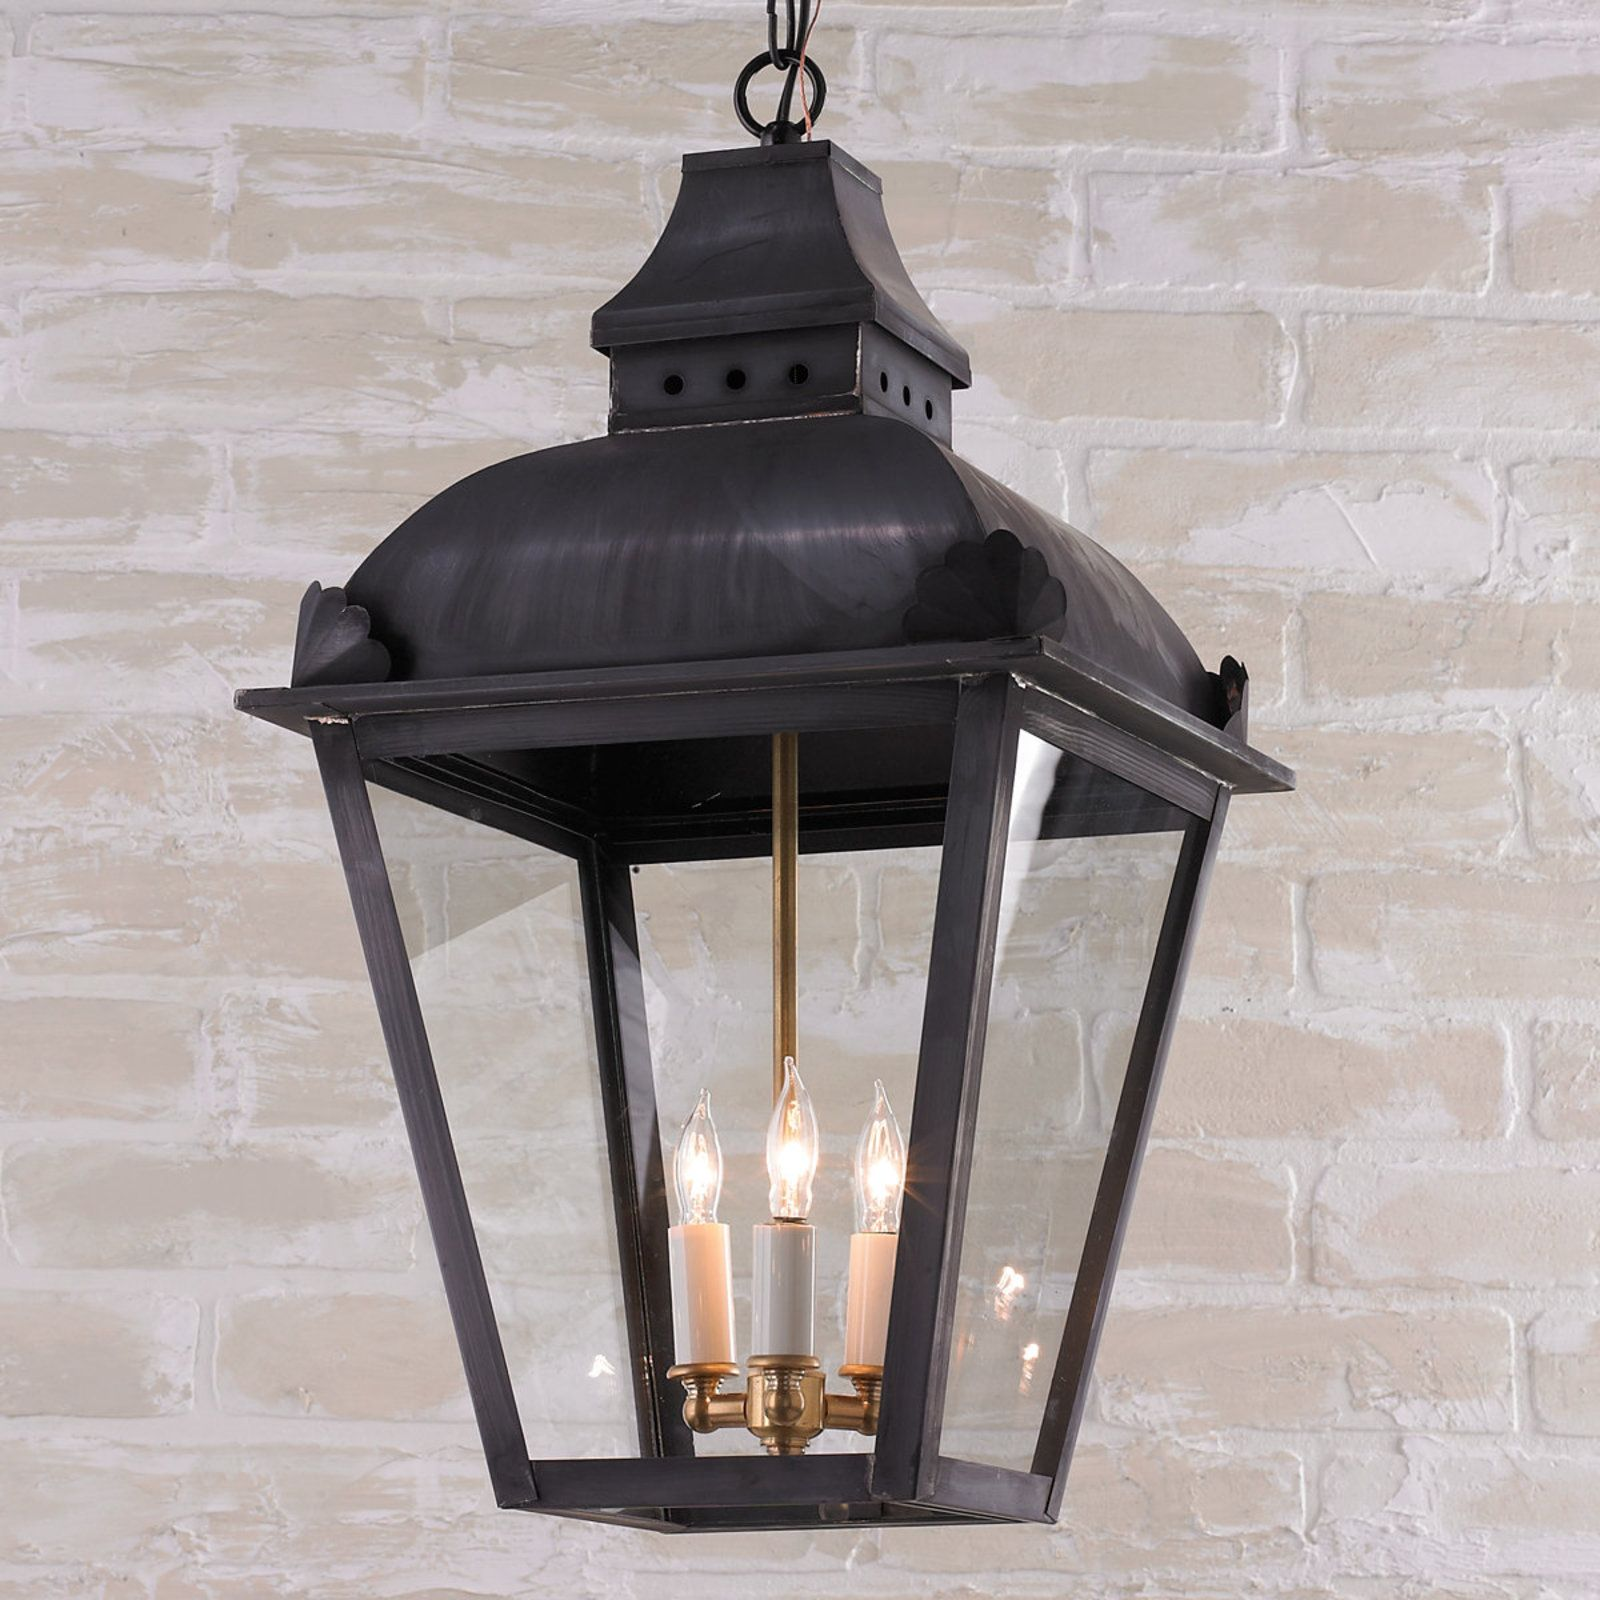 Outdoor Hanging Lanterns Colonial Era Outdoor Hanging Lantern Outdoor Hanging